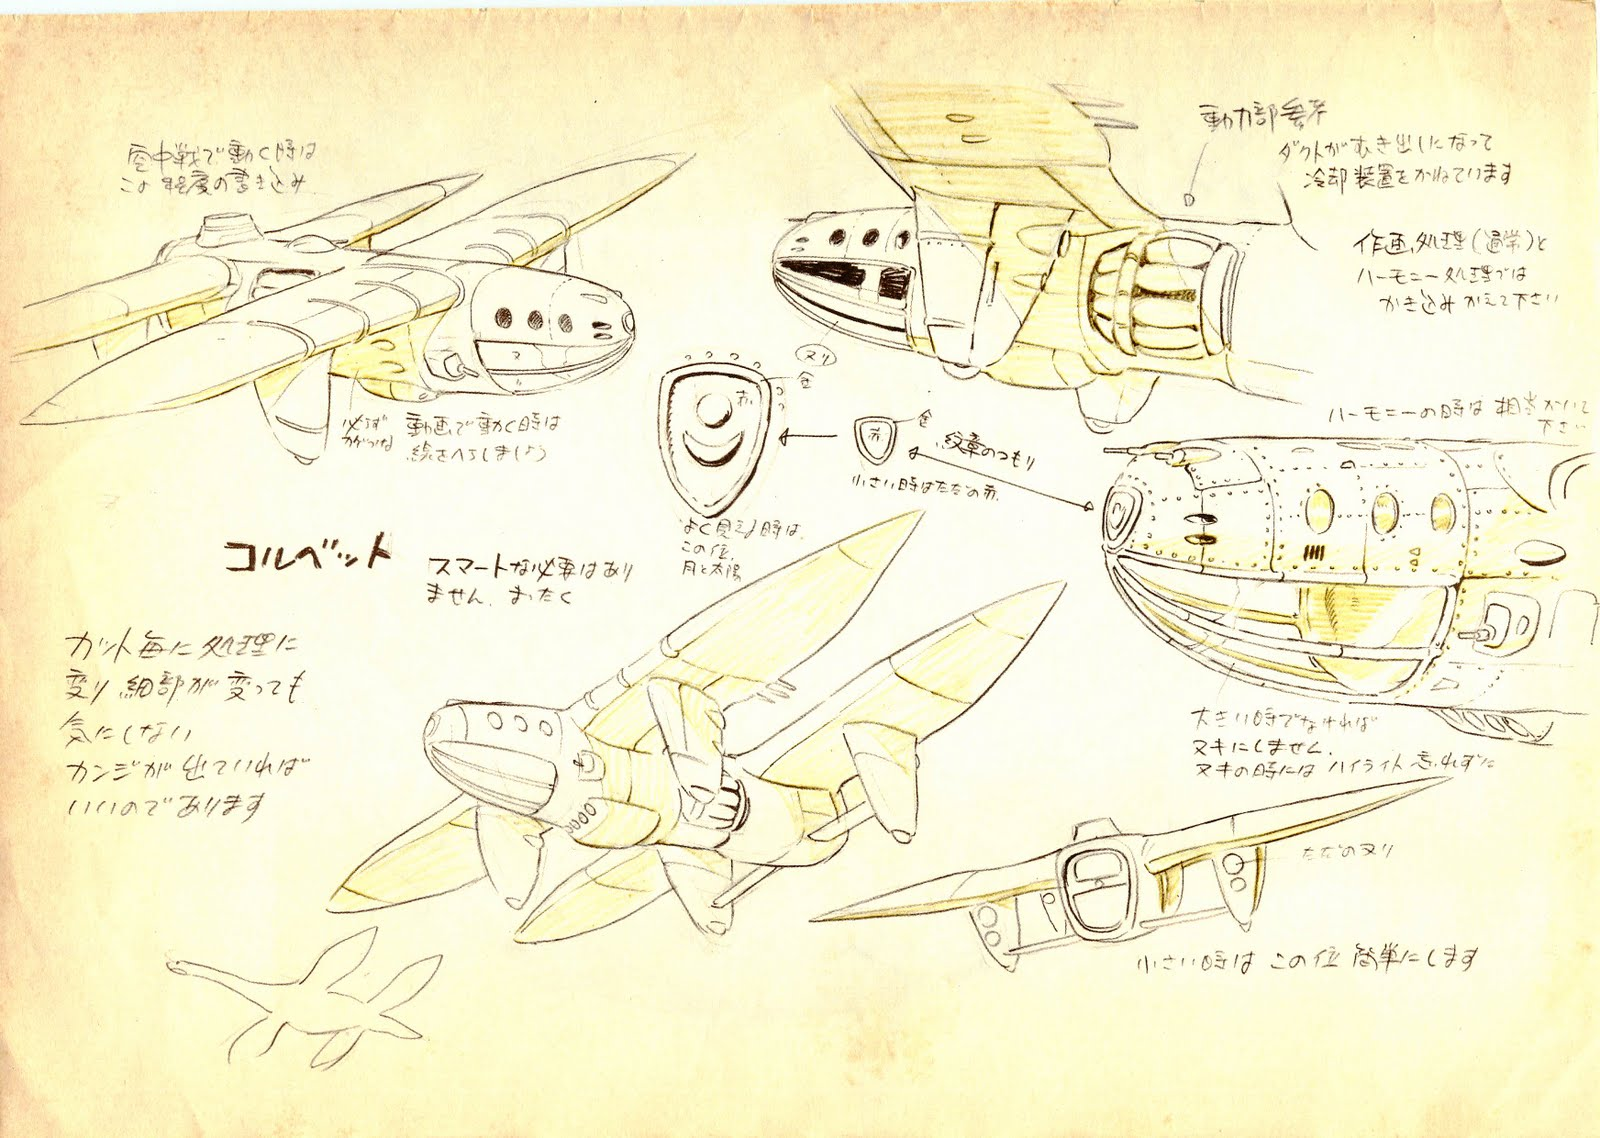 nausicaa_of_the_valley_of_the_wind_concept_art_prop_03.jpg